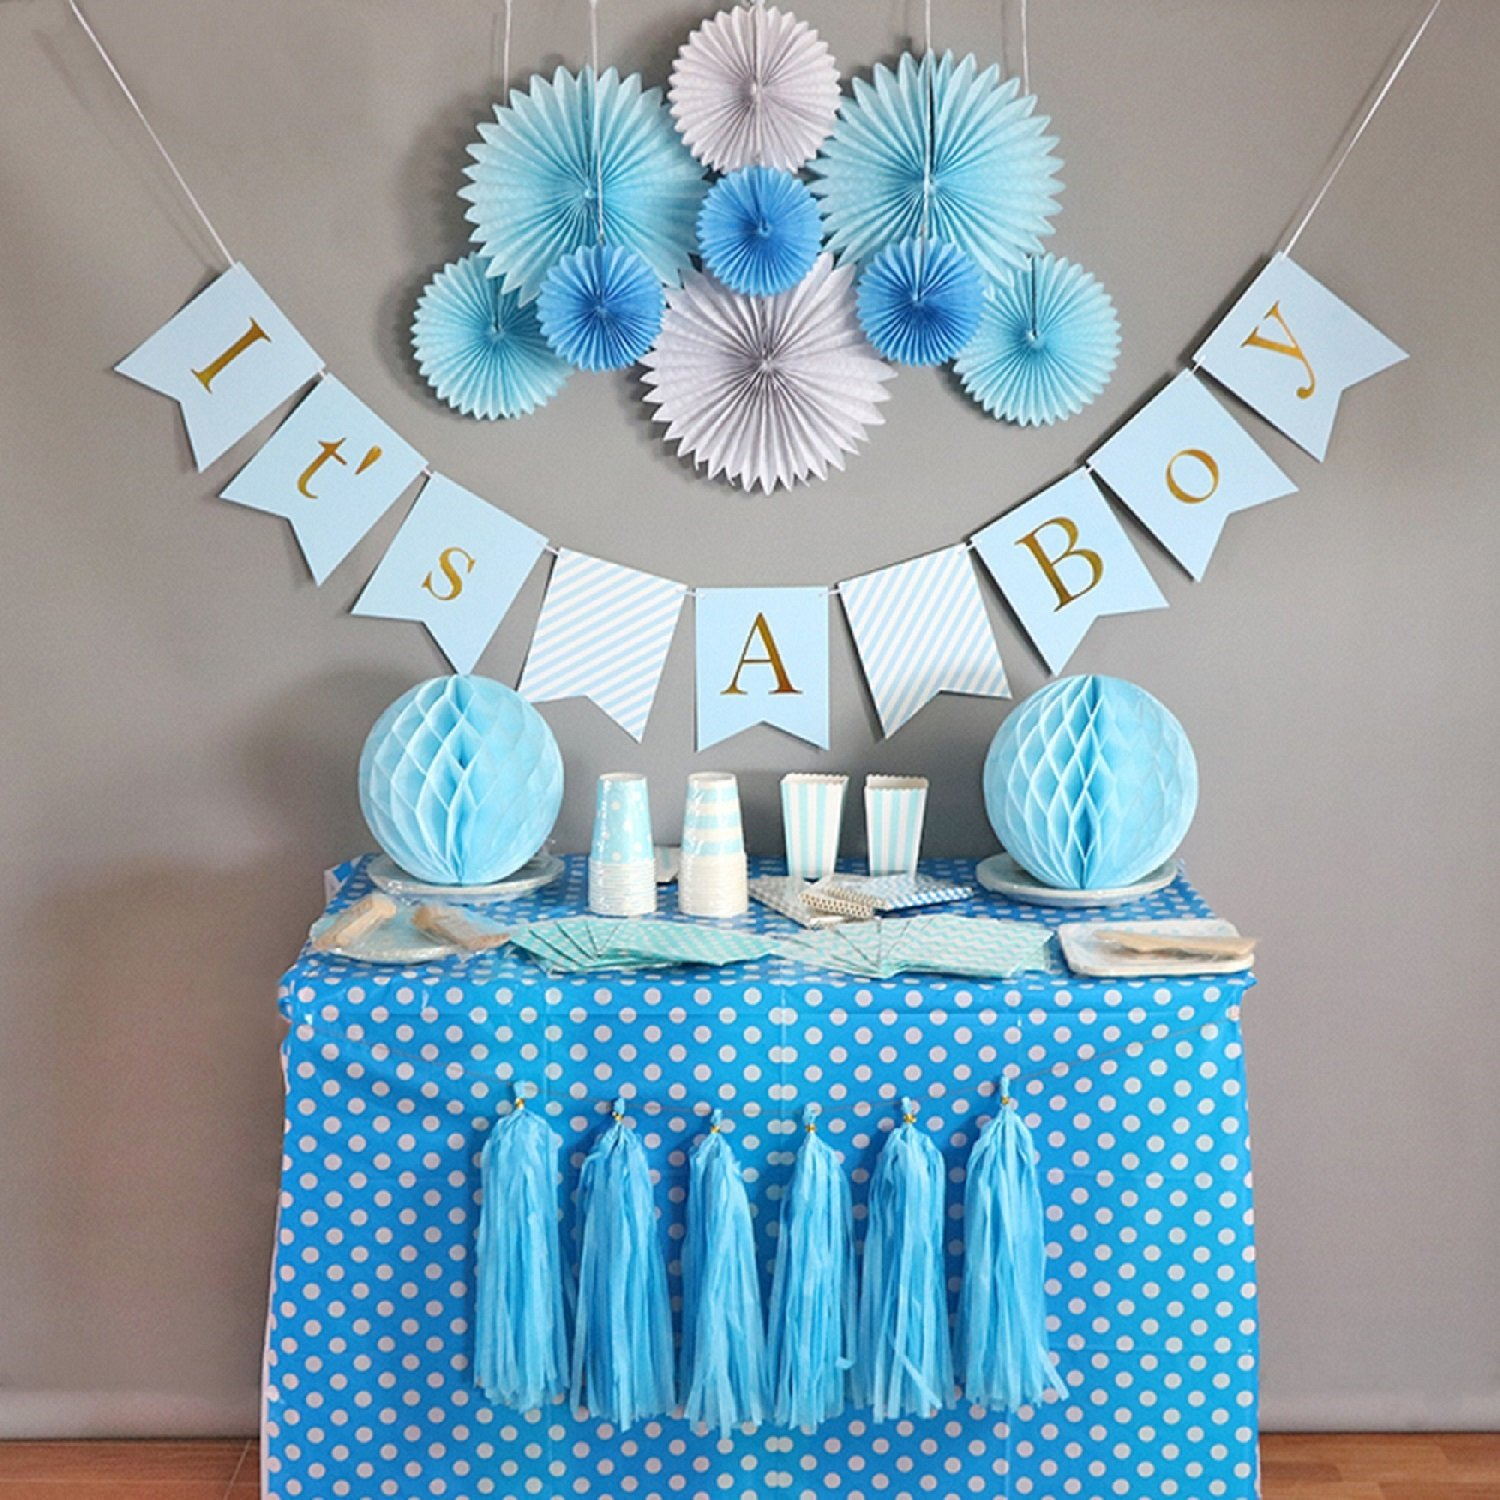 2aab1c73915 Amazon.com   Baby Shower Decorations for Boy kit